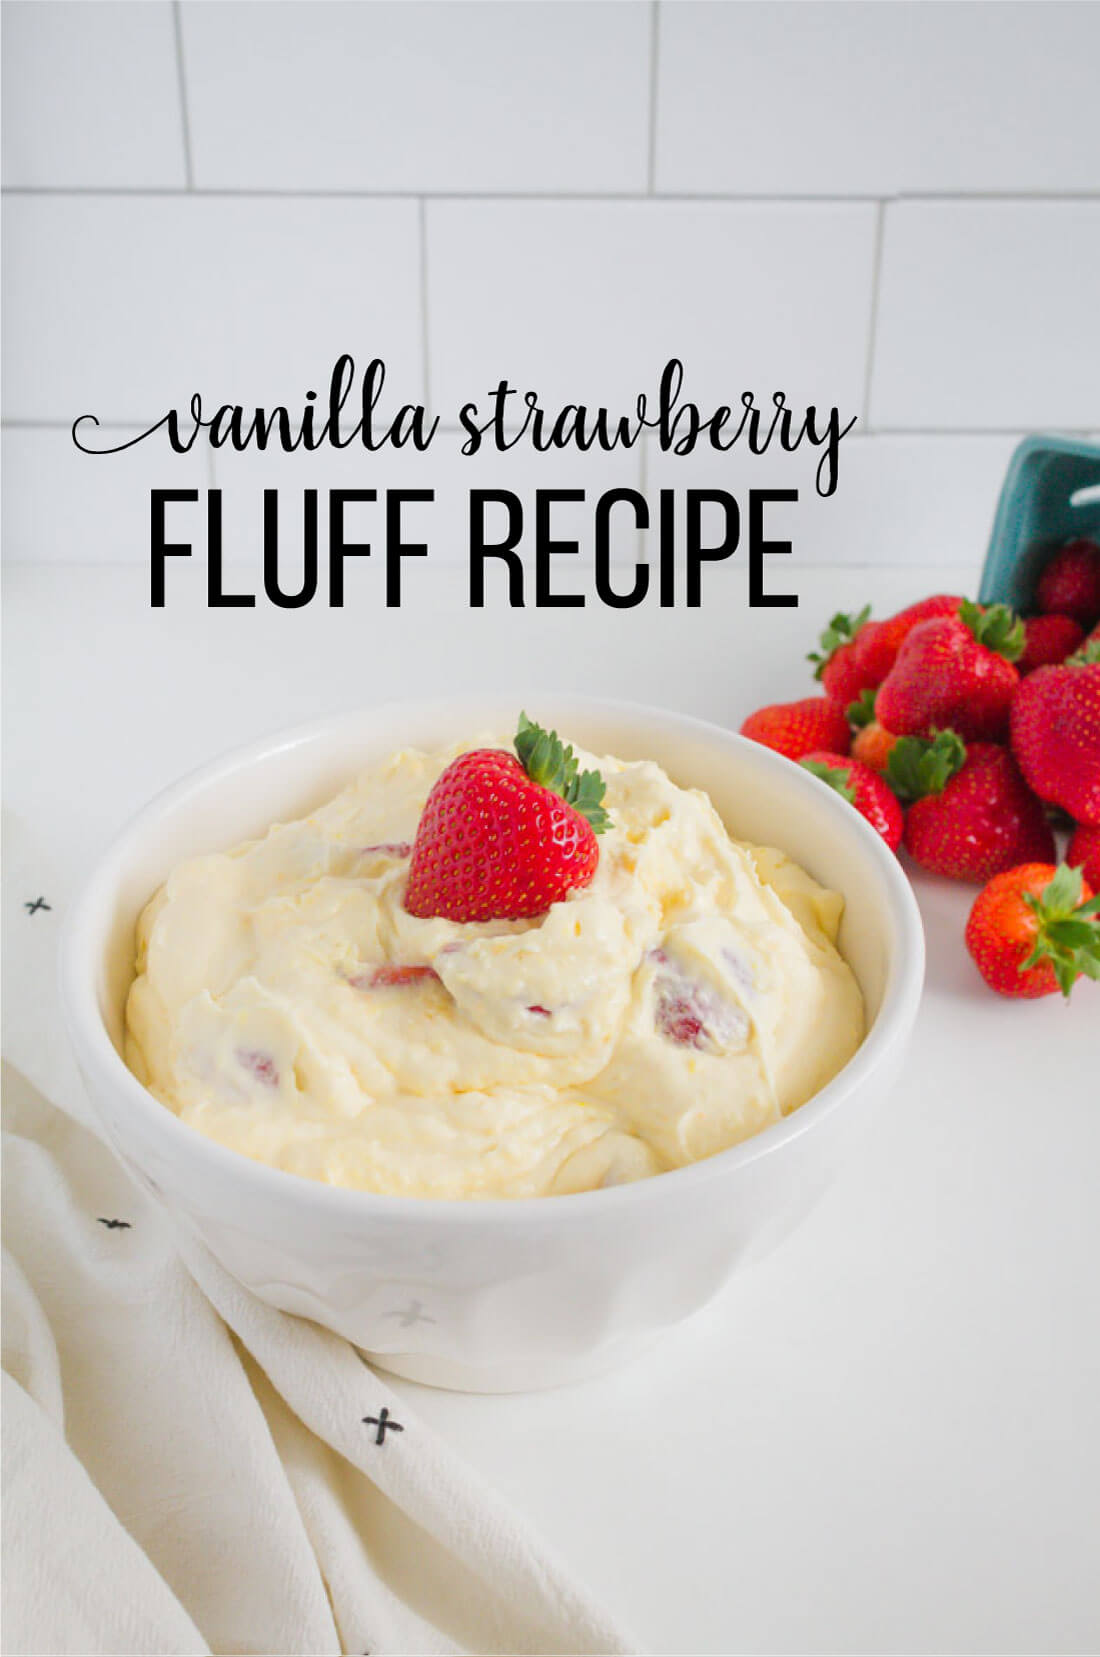 Vanilla Strawberry Fluff Recipe - a yummy dessert recipe from www.thirtyhandmadedays.com